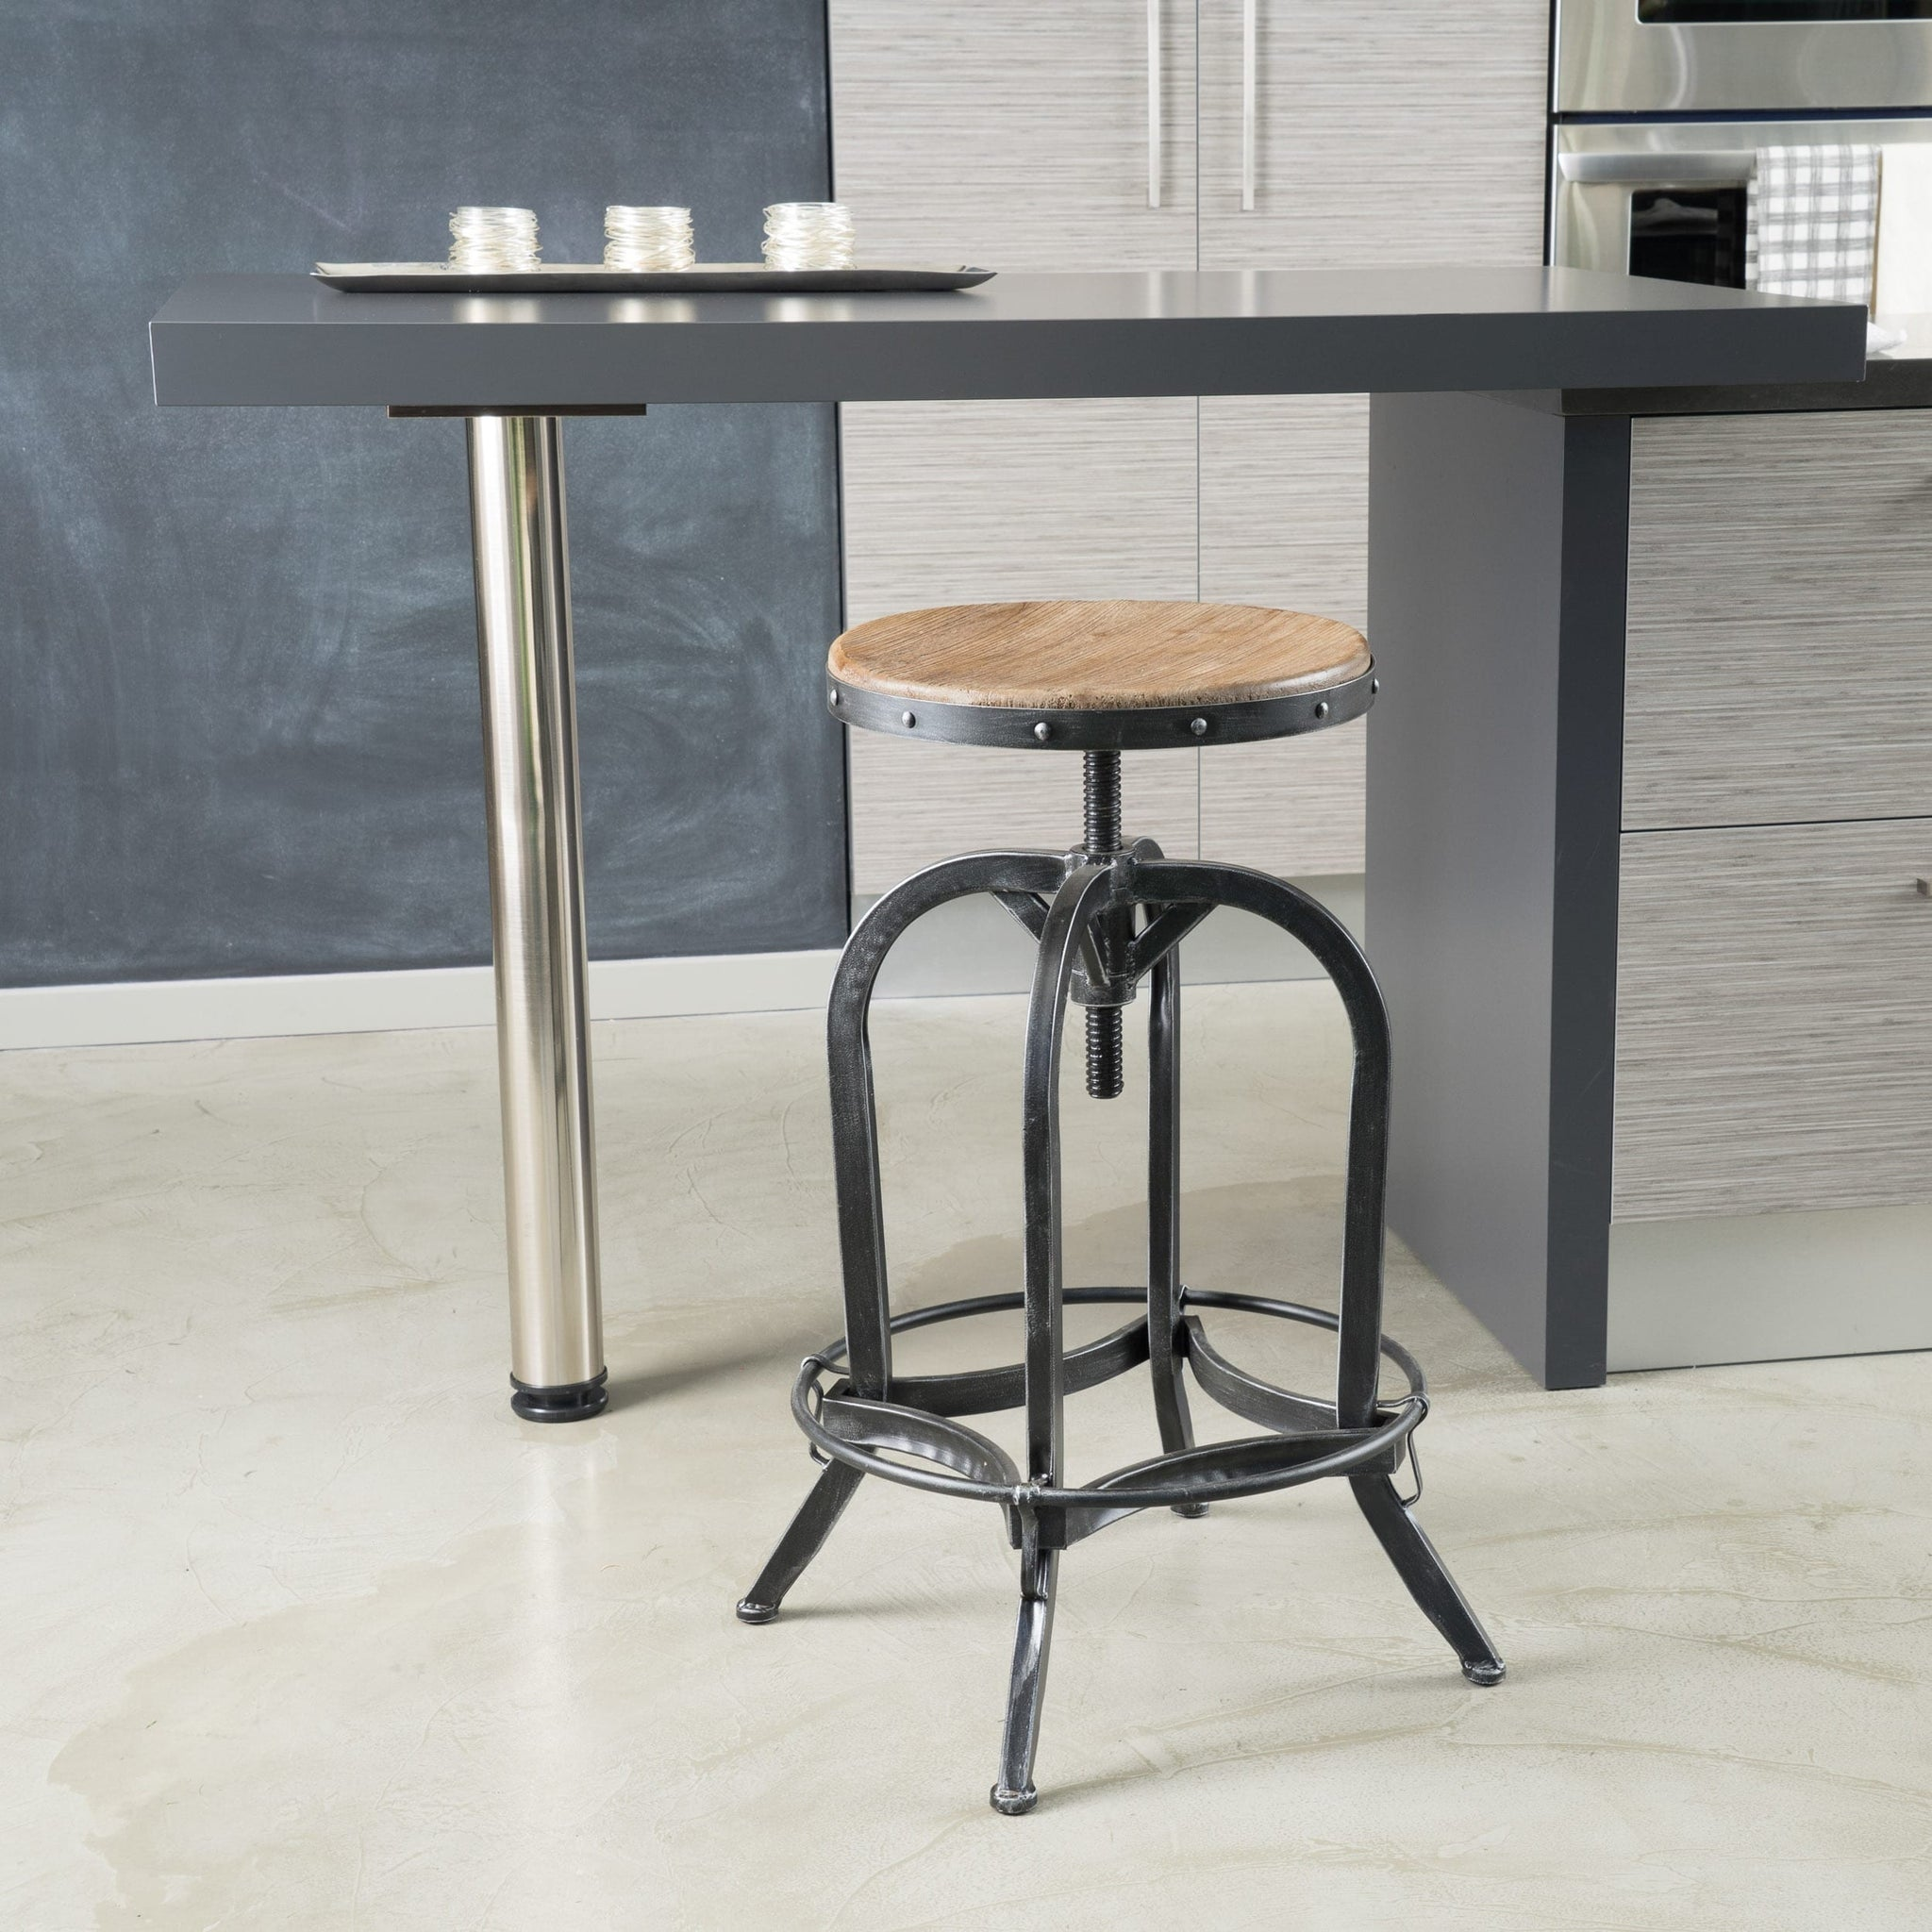 Adjustable 26-inch Natural Fir Wood Finish Bar Stool